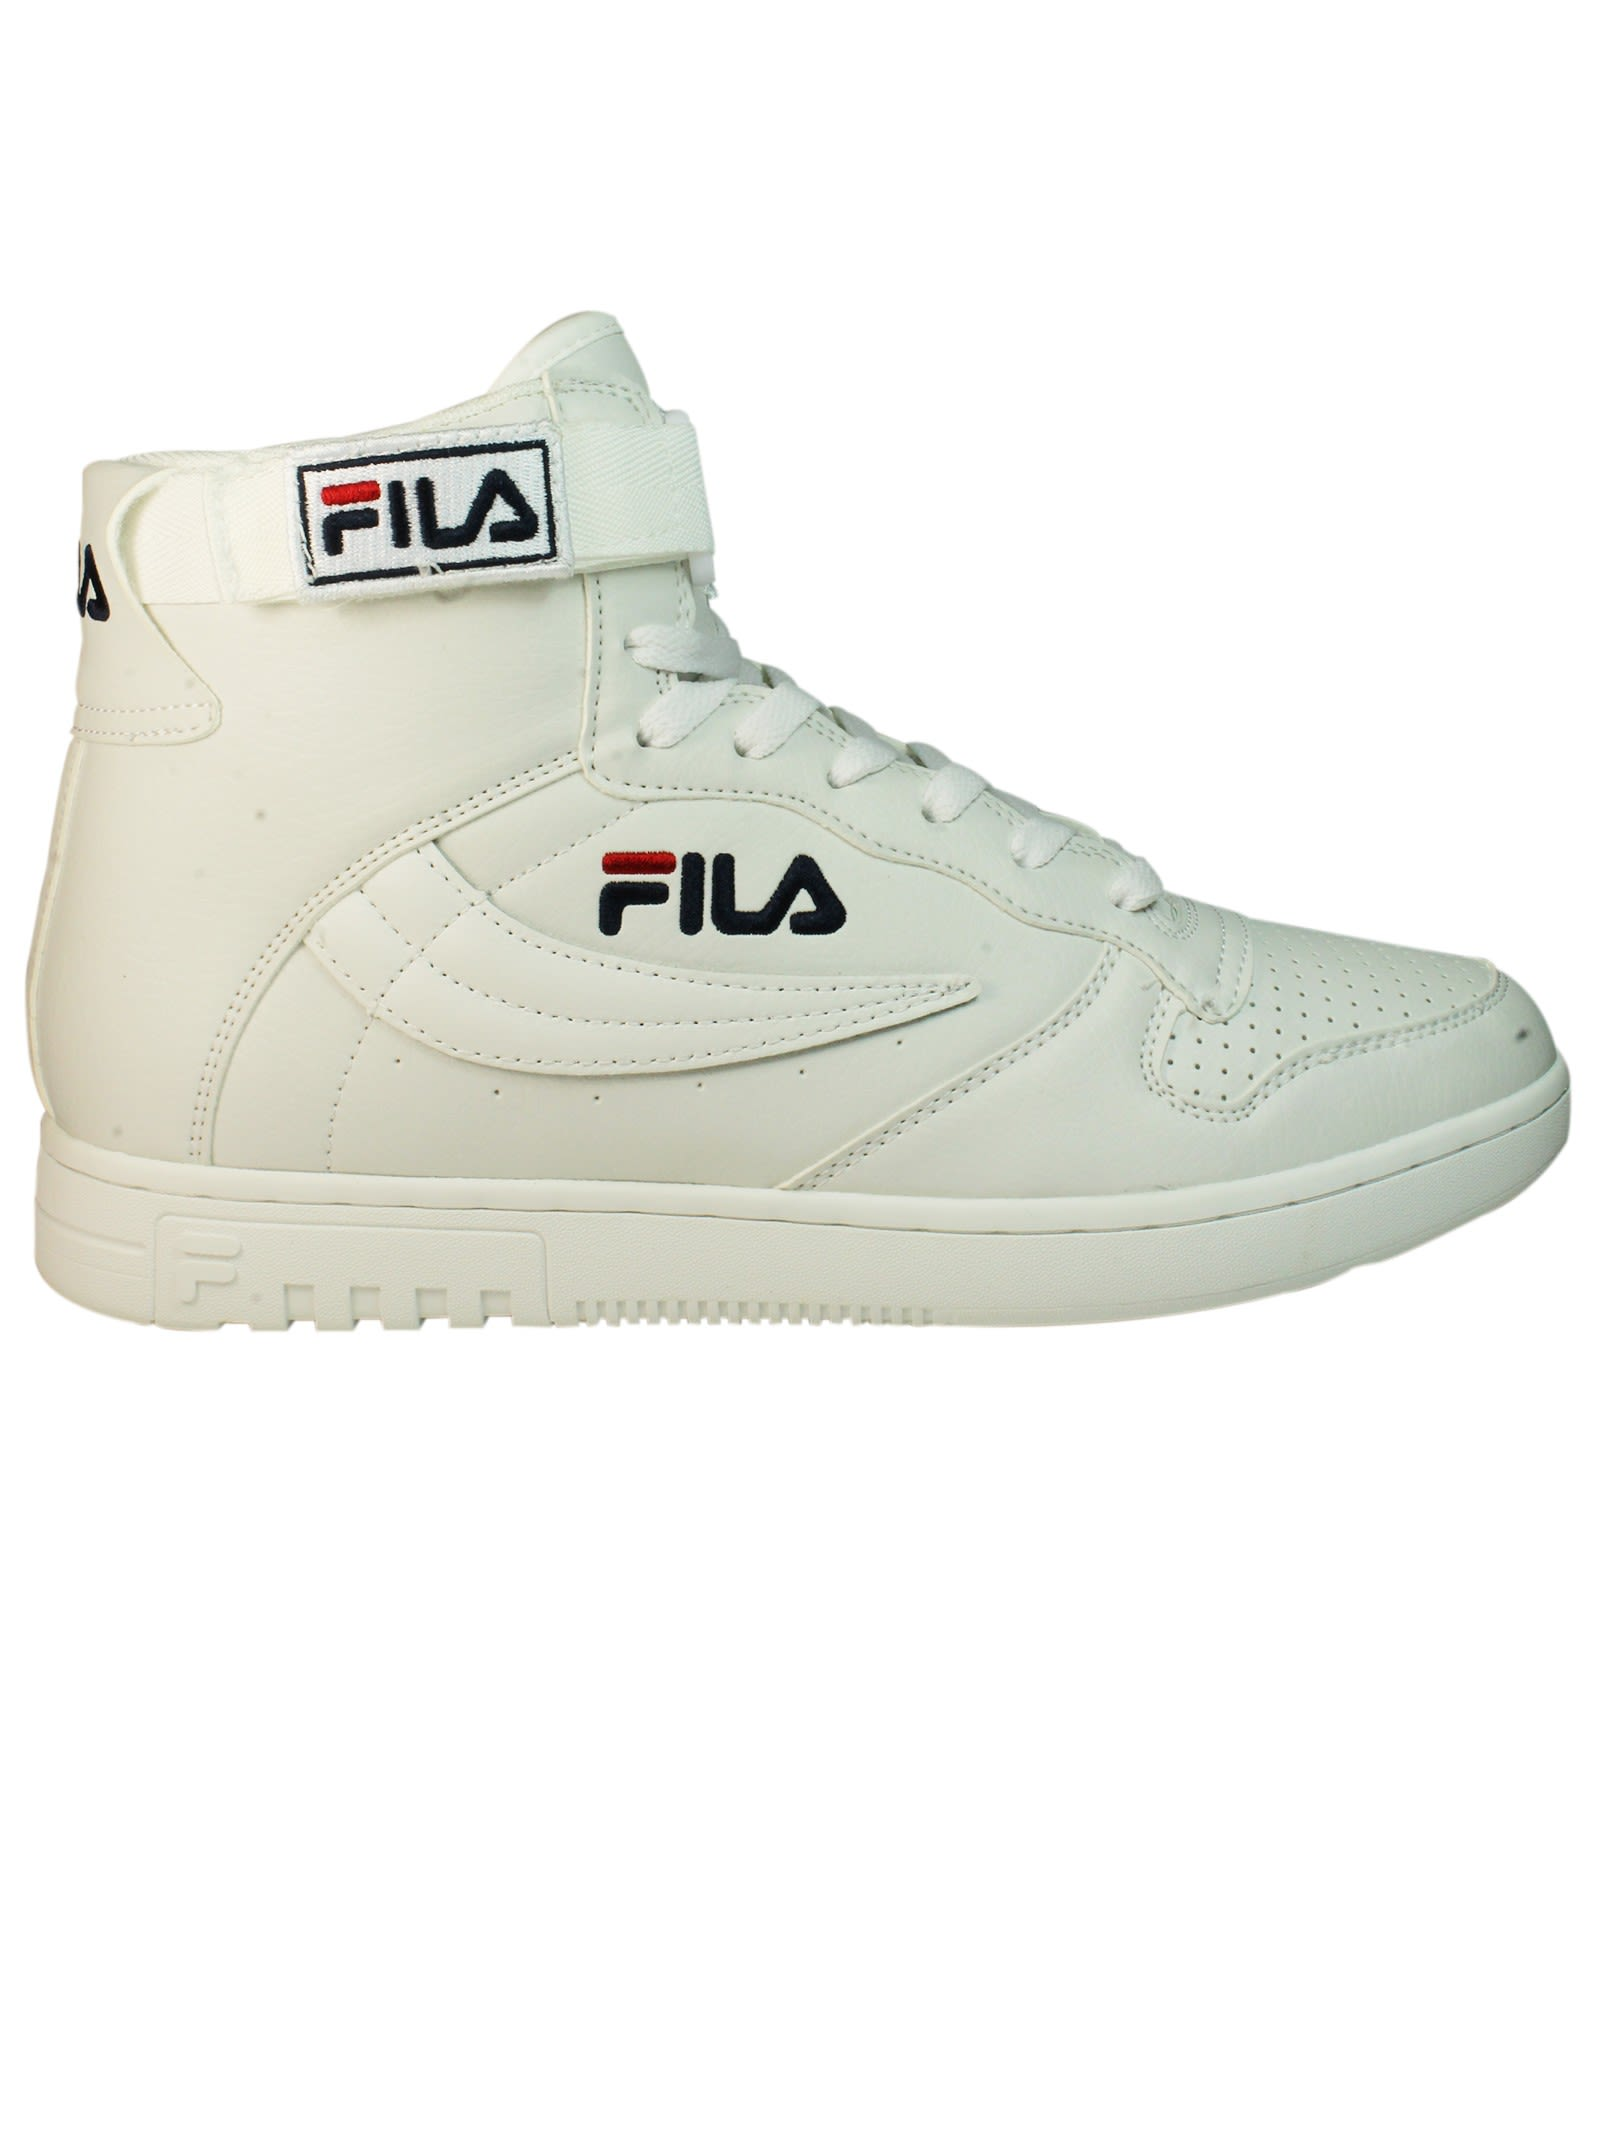 Total White Fx 100 High Sneakers